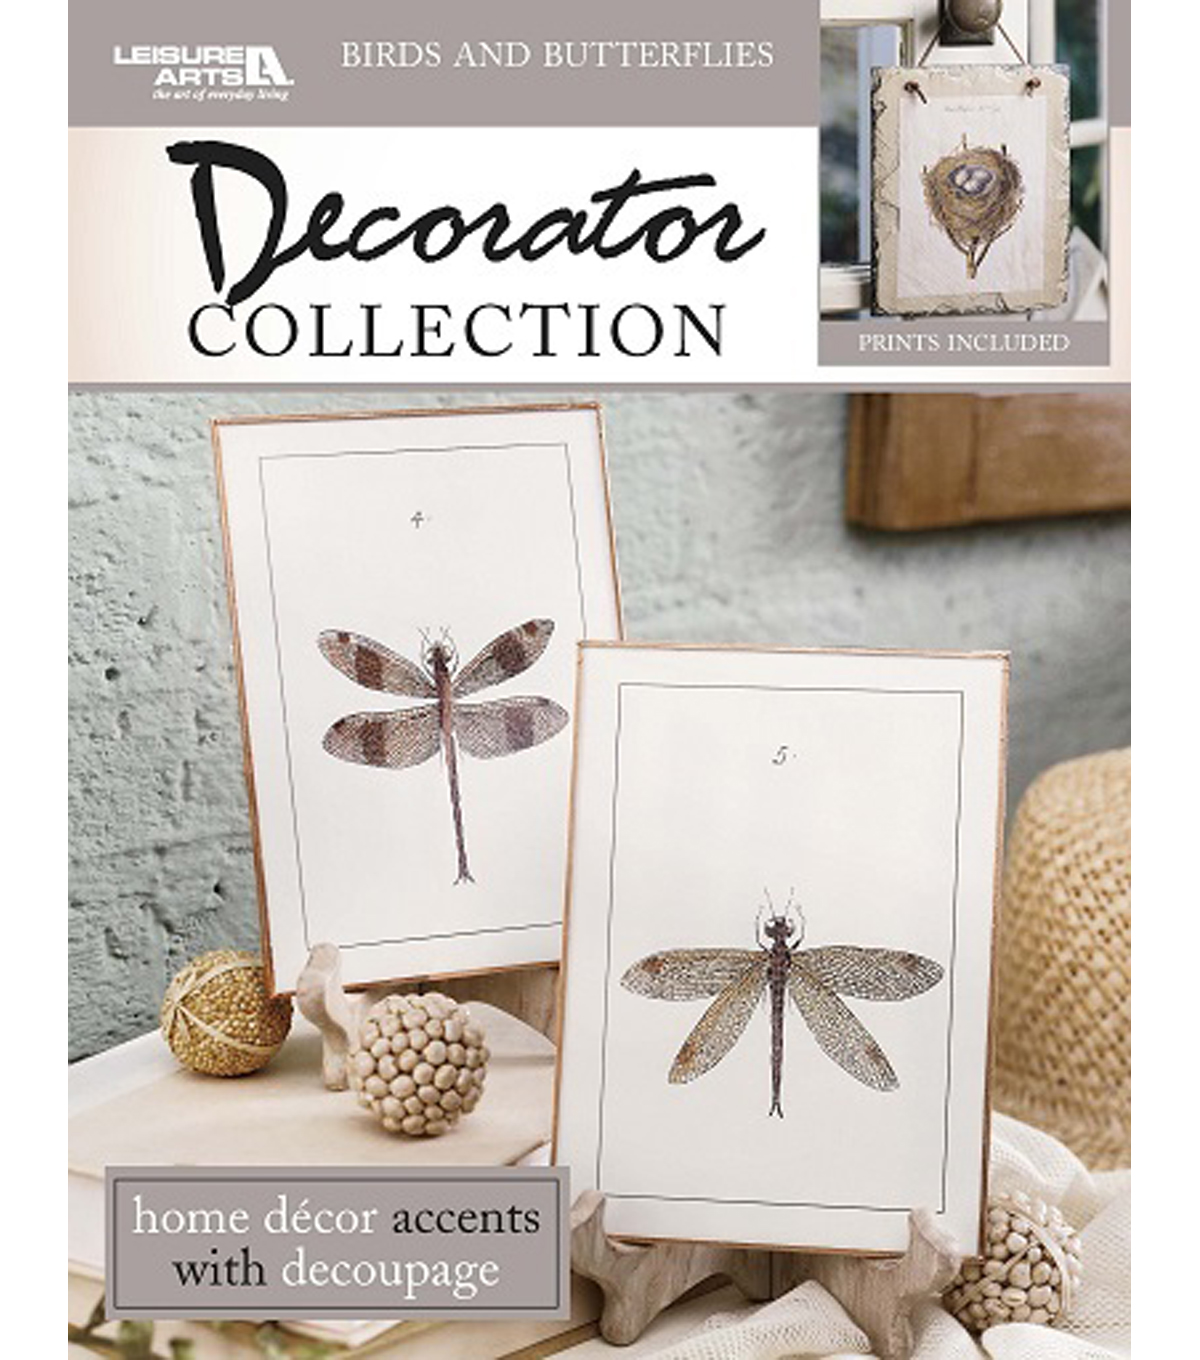 Birds & Butterflies Decorator Collection Book